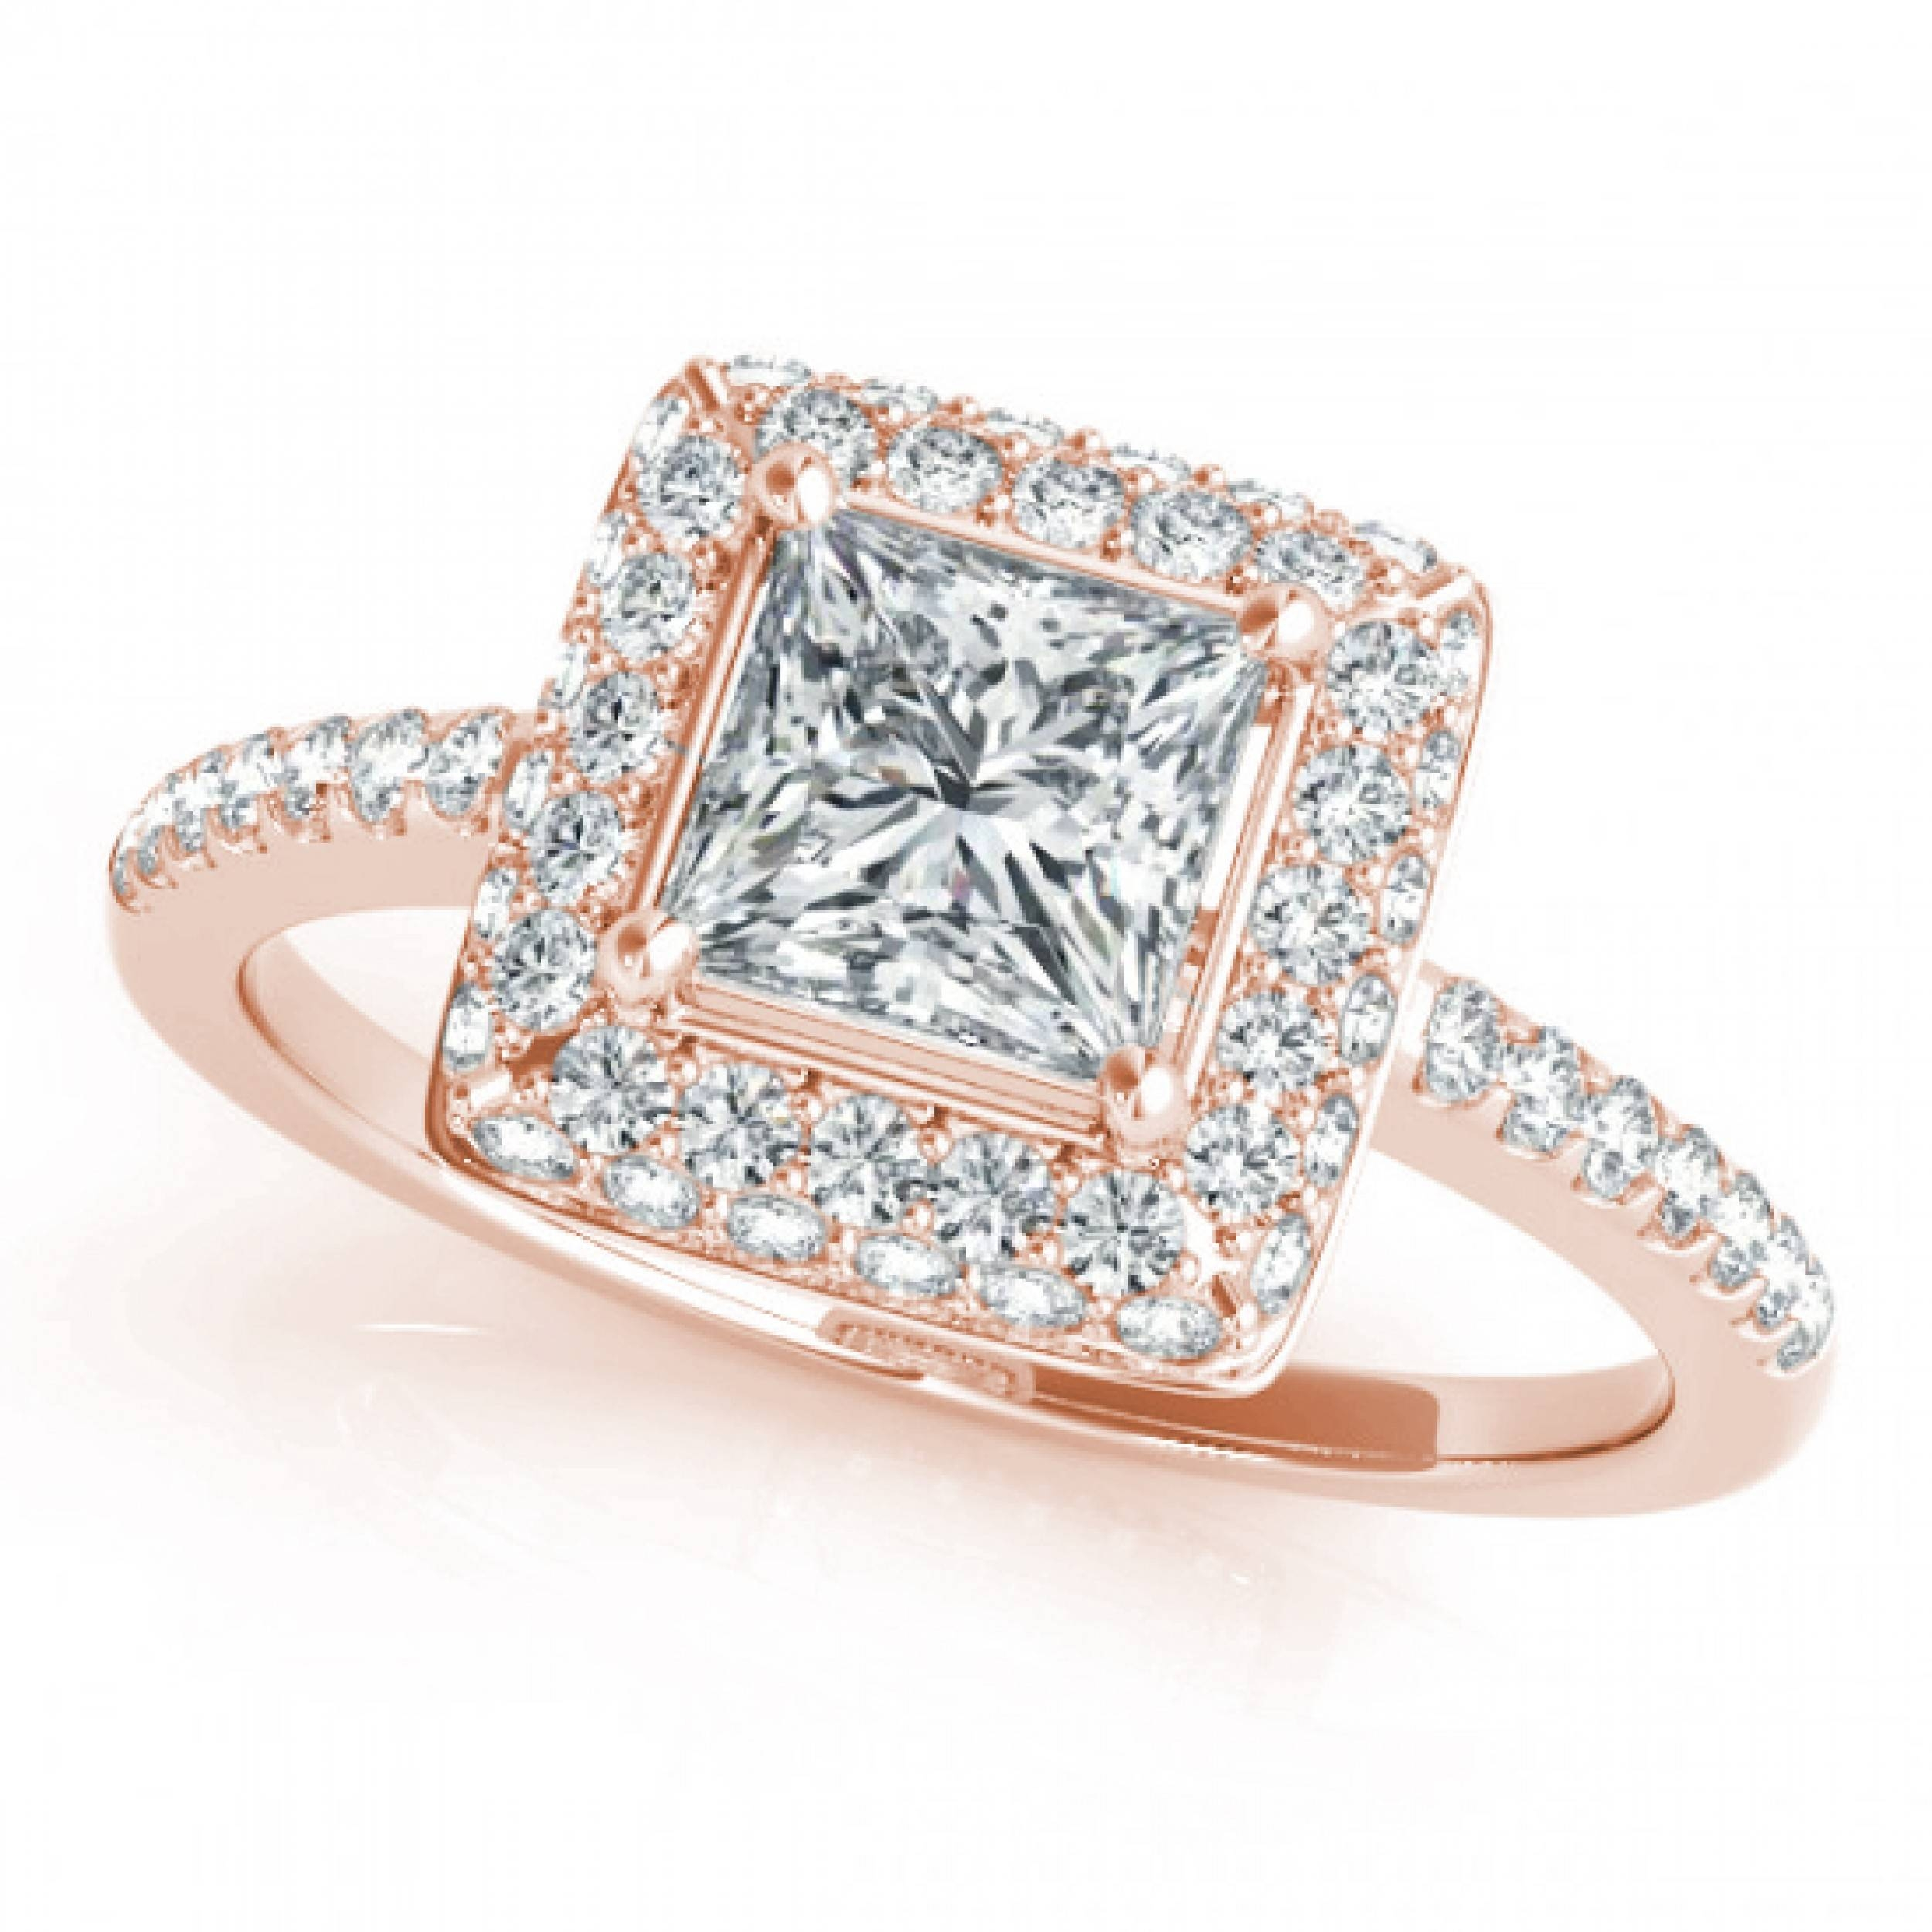 2ctw Double Princess Cut Halo Engagement Ring In 14k Rose Gold Throughout Princess Cut Diamond Engagement Rings (View 11 of 15)